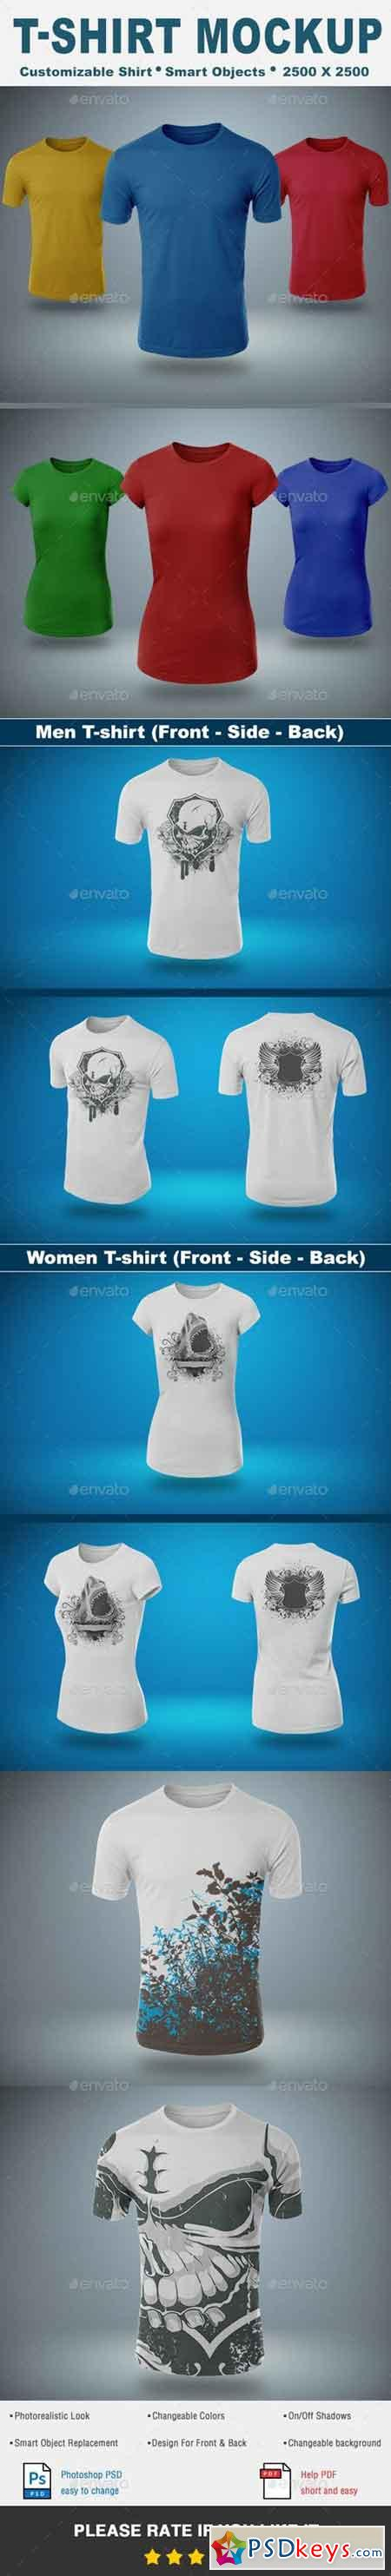 Design your own t shirt free download - T Shirt Mock Up Vol 1 19566585